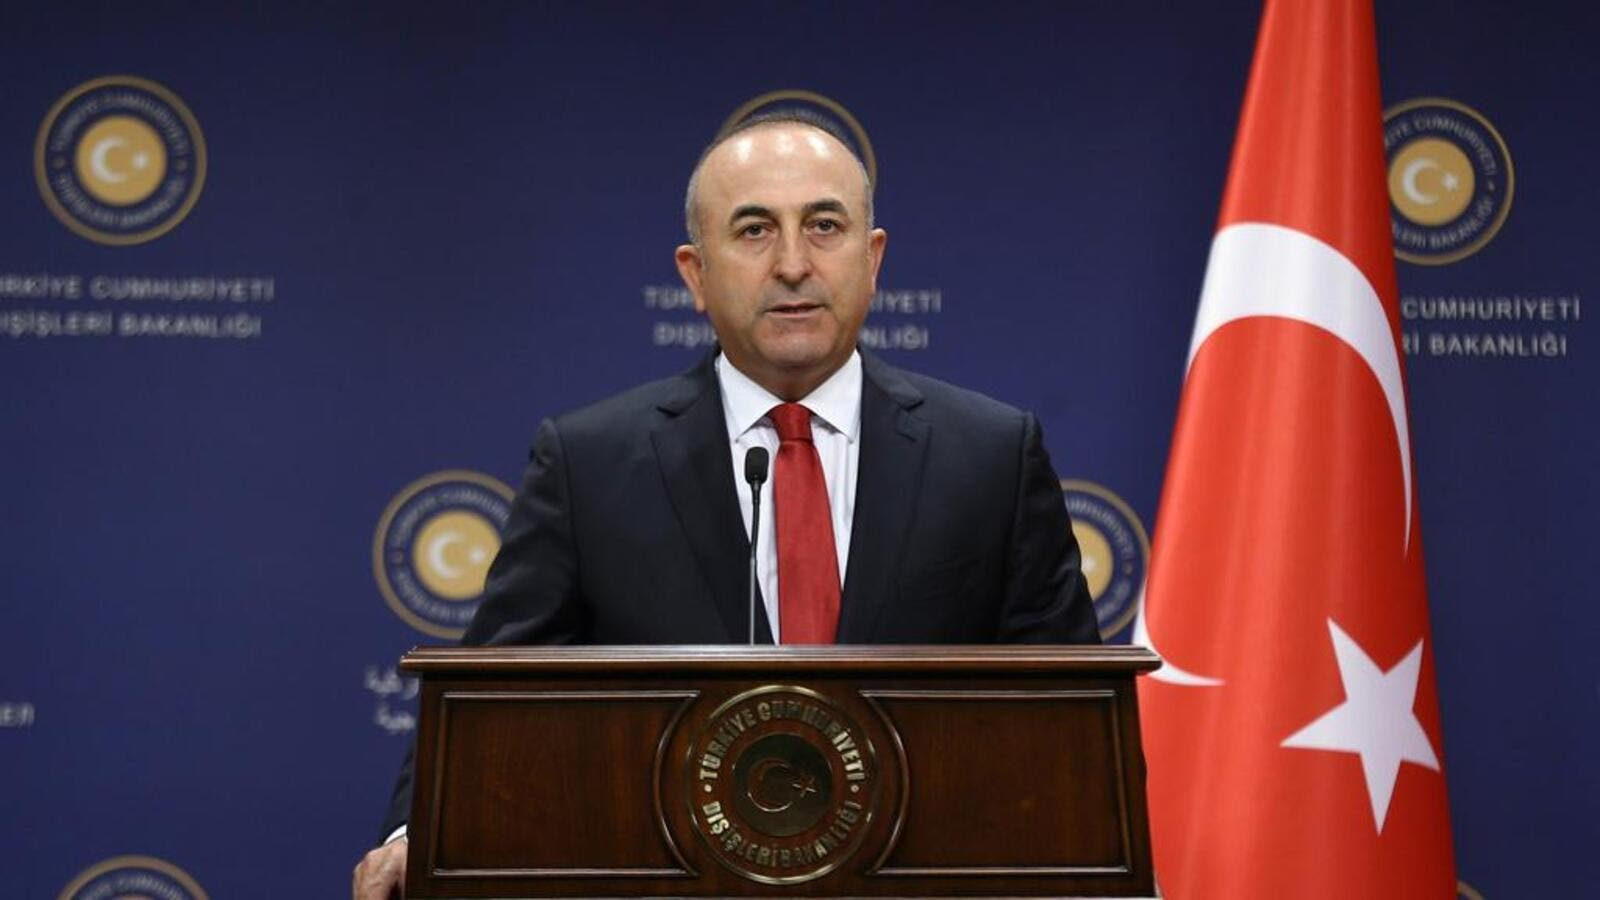 Turkish Foreign Minister Mevlut Cavusoglu gives a press conference in Ankara on July 25. (AFP/ File Photo)